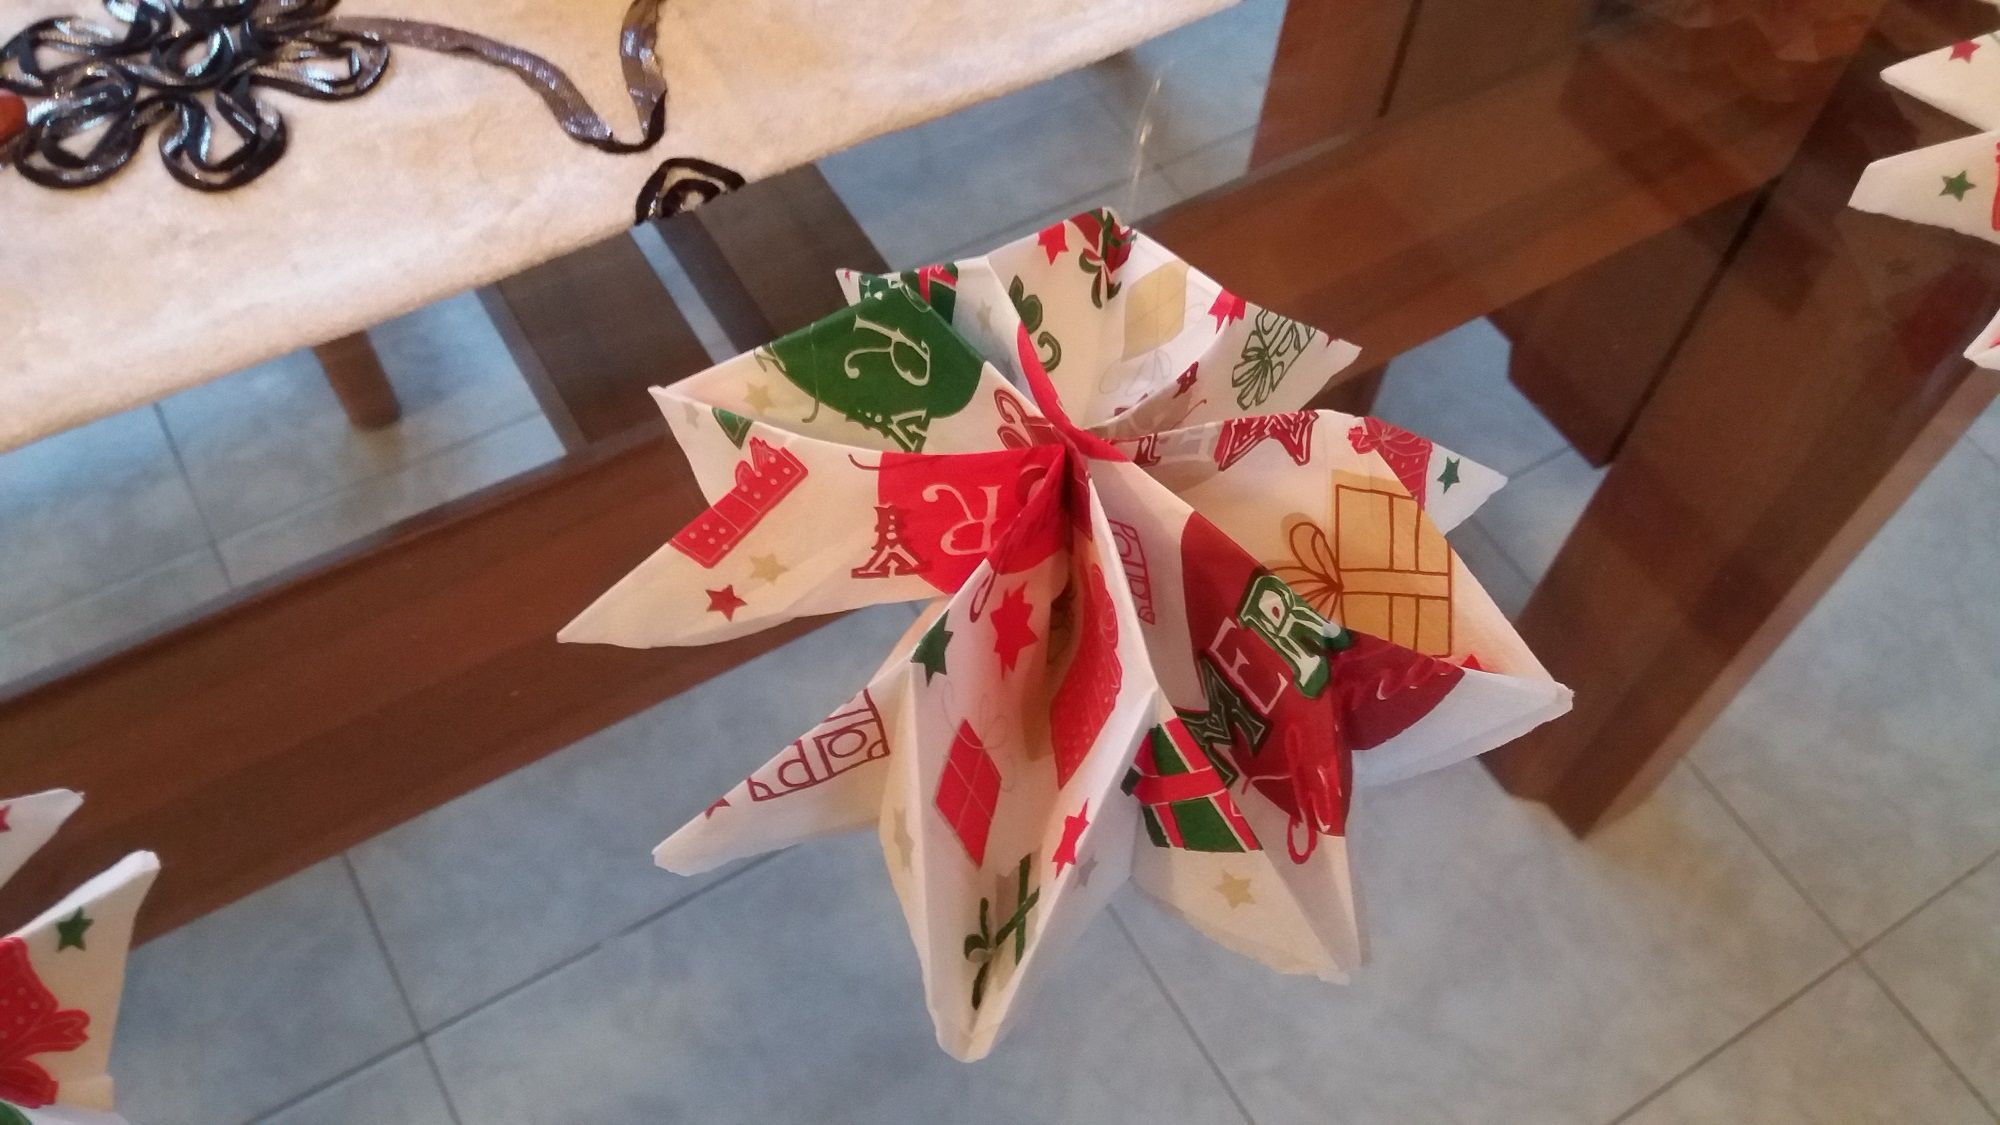 Instructions: how to fold a Napkin in the shape of a Snowflake to lay the Christmas Table or End of Year Dinner